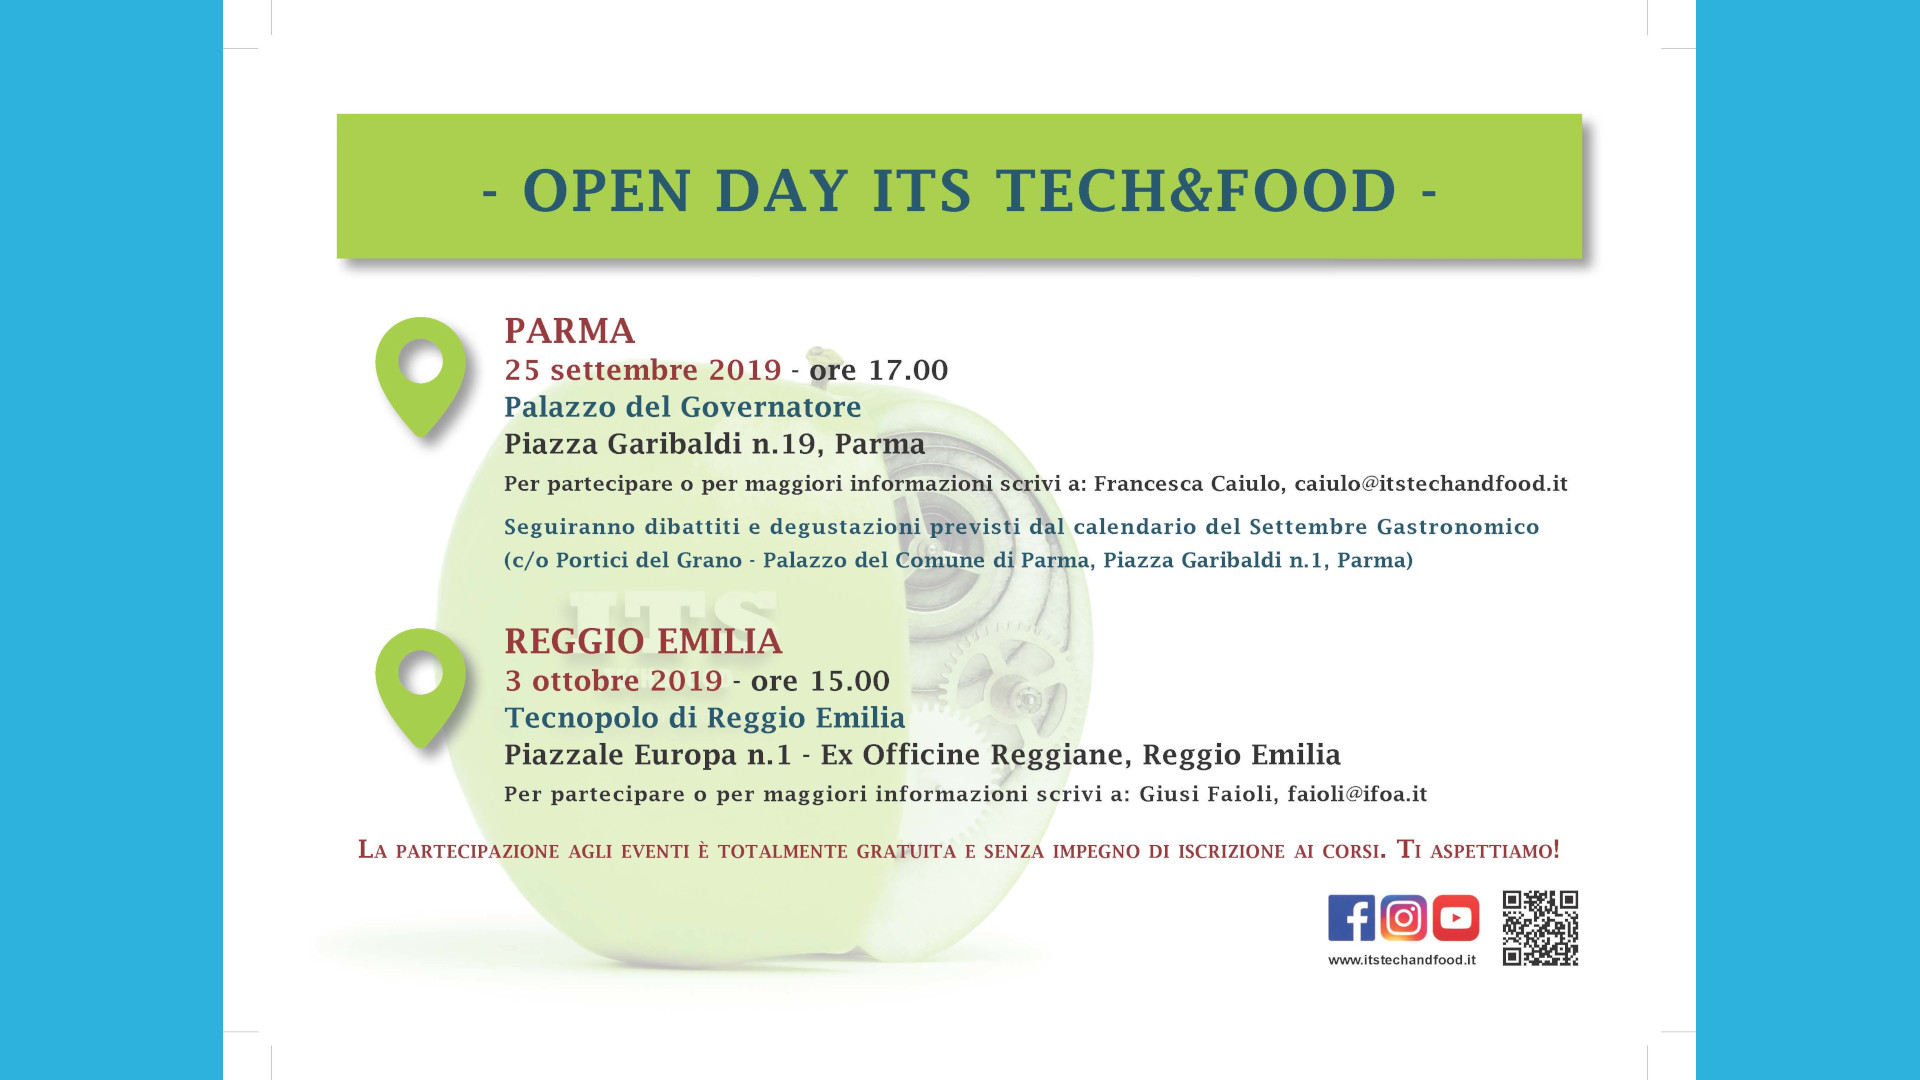 open day ITS